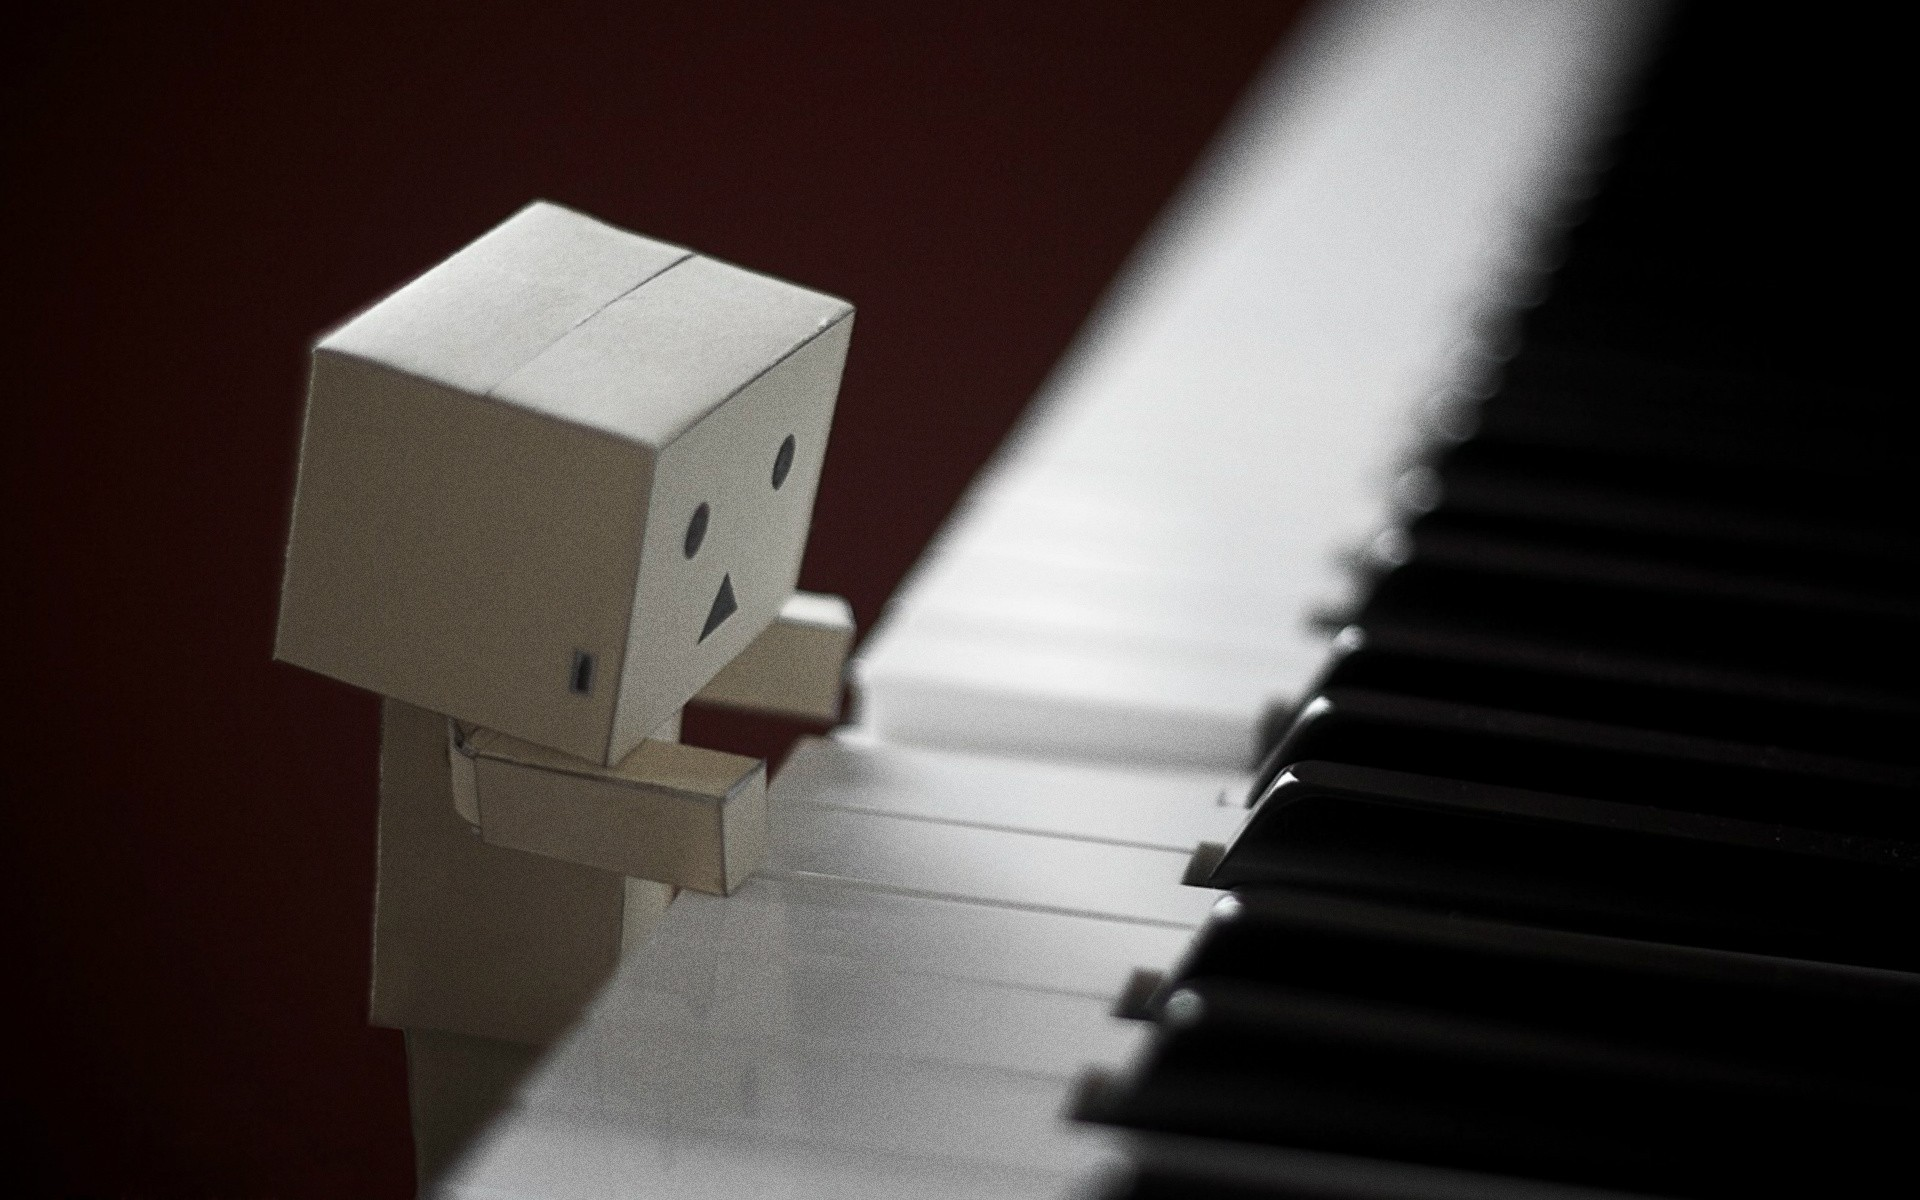 Piano Wallpaper For Android Posted By Ryan Mercado